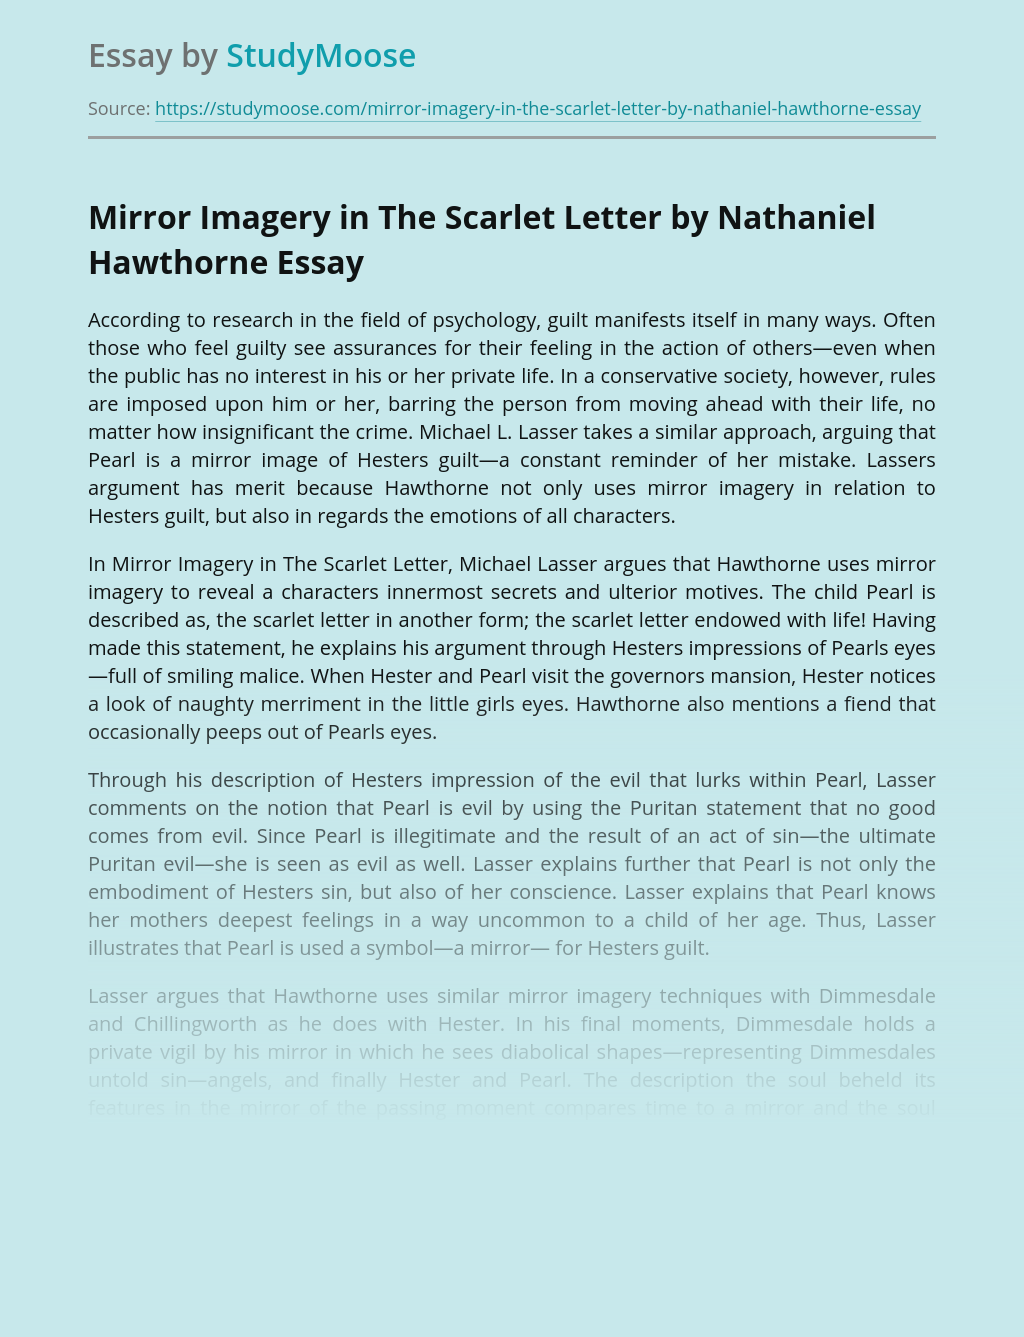 Mirror Imagery in The Scarlet Letter by Nathaniel Hawthorne